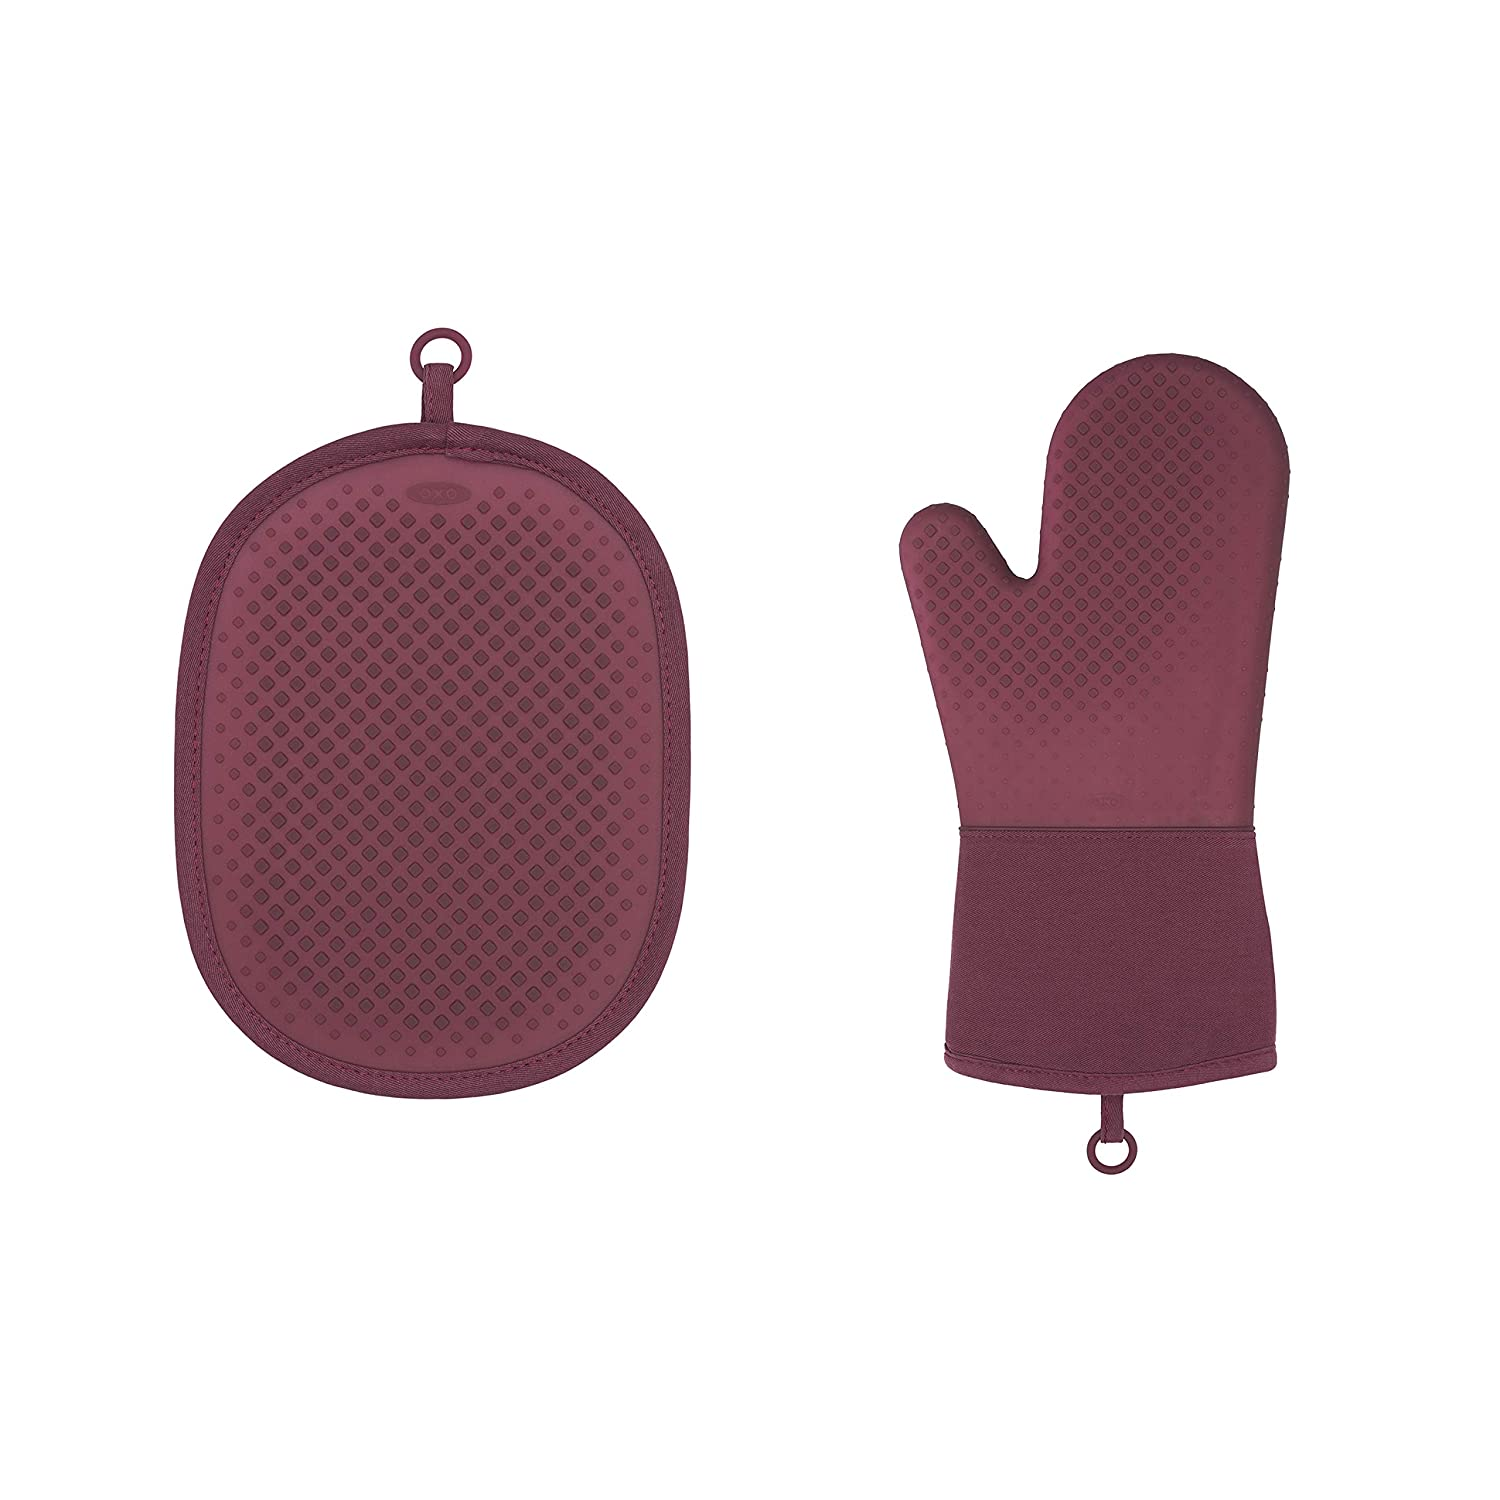 OXO Good Grips Silicone Oven Mitt & Pot Holder Set